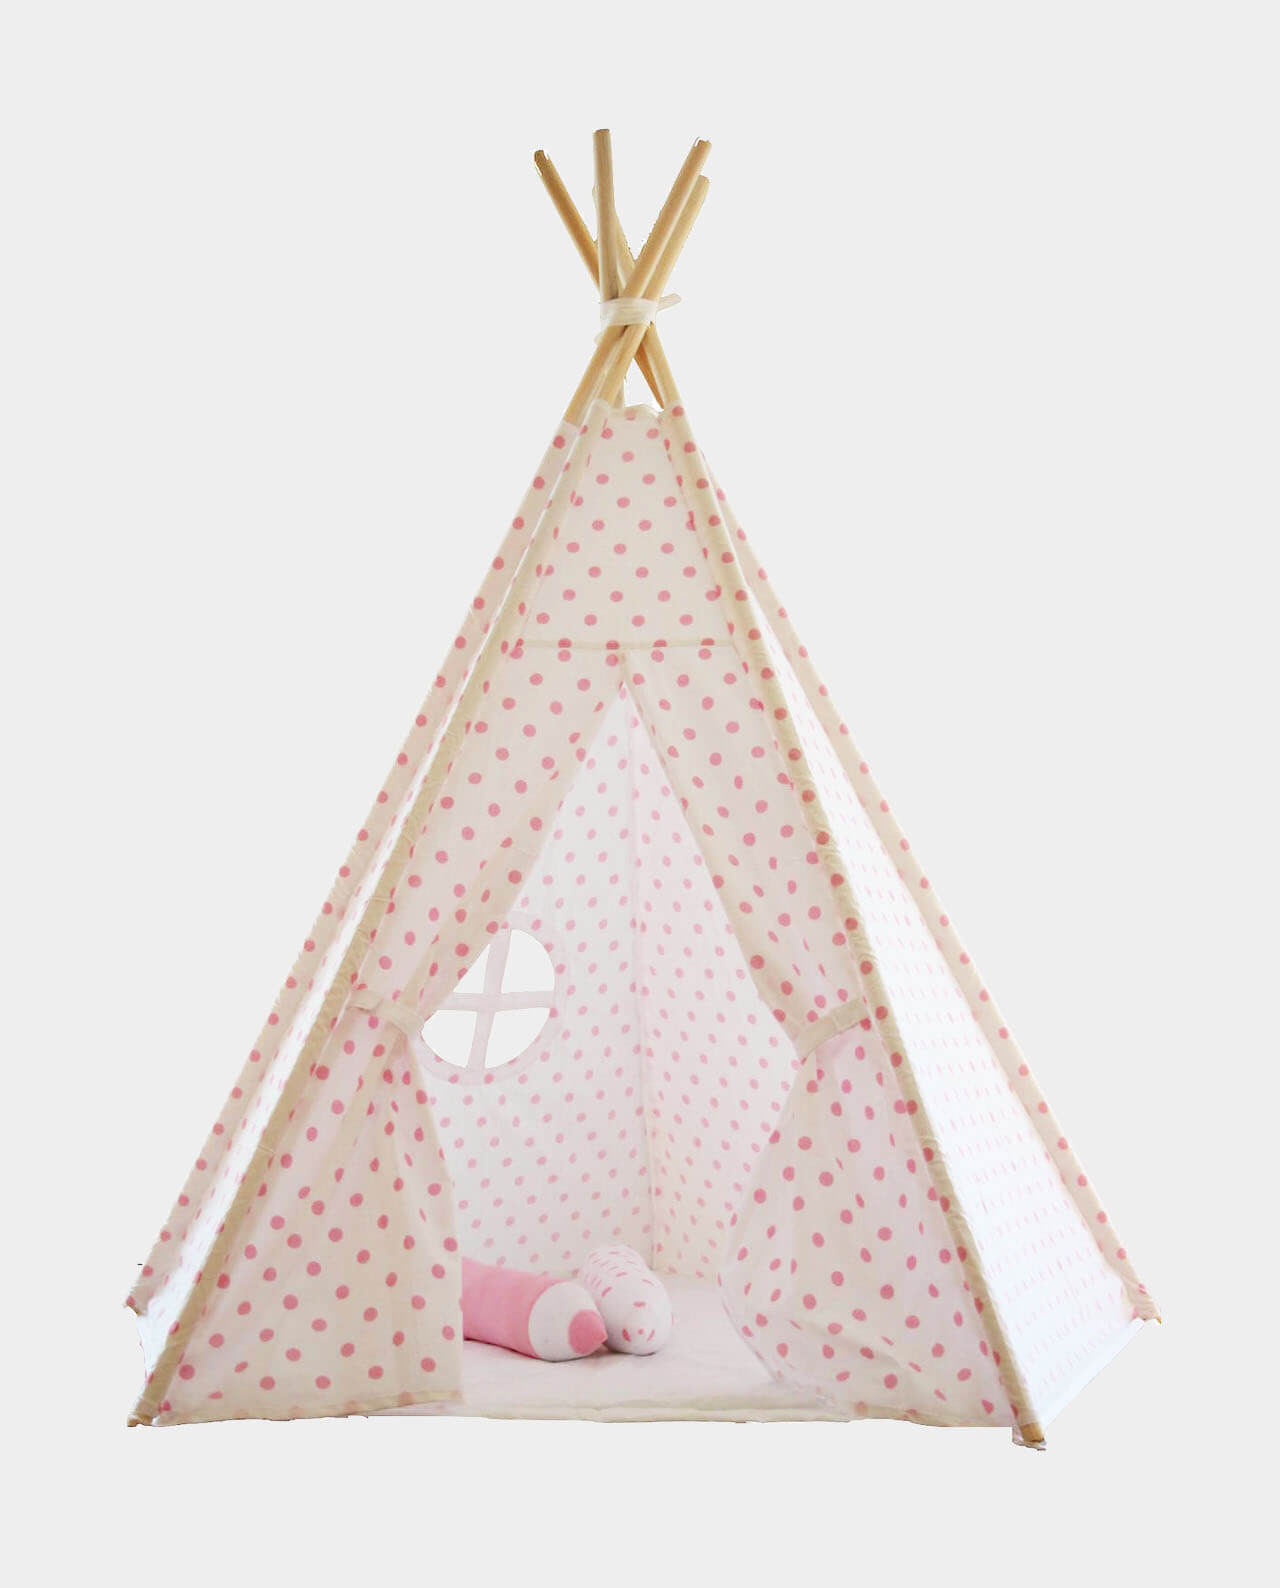 tipi kinderzelt wikimak jetzt online kaufen. Black Bedroom Furniture Sets. Home Design Ideas